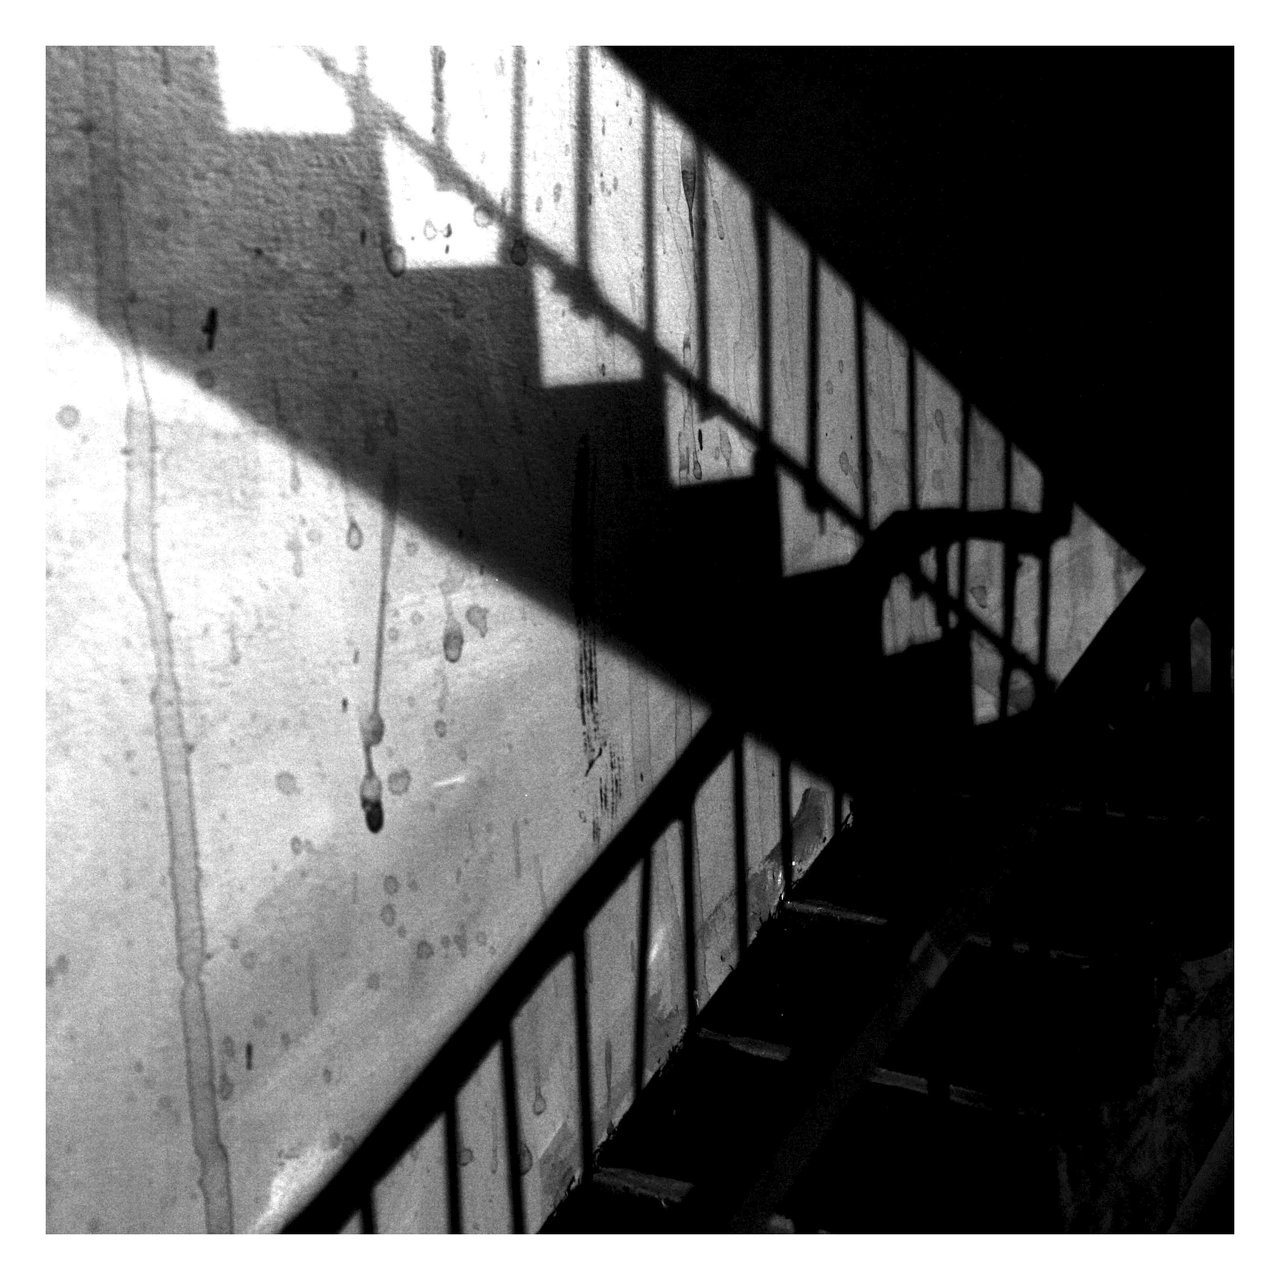 Art House Series: Stairs detail